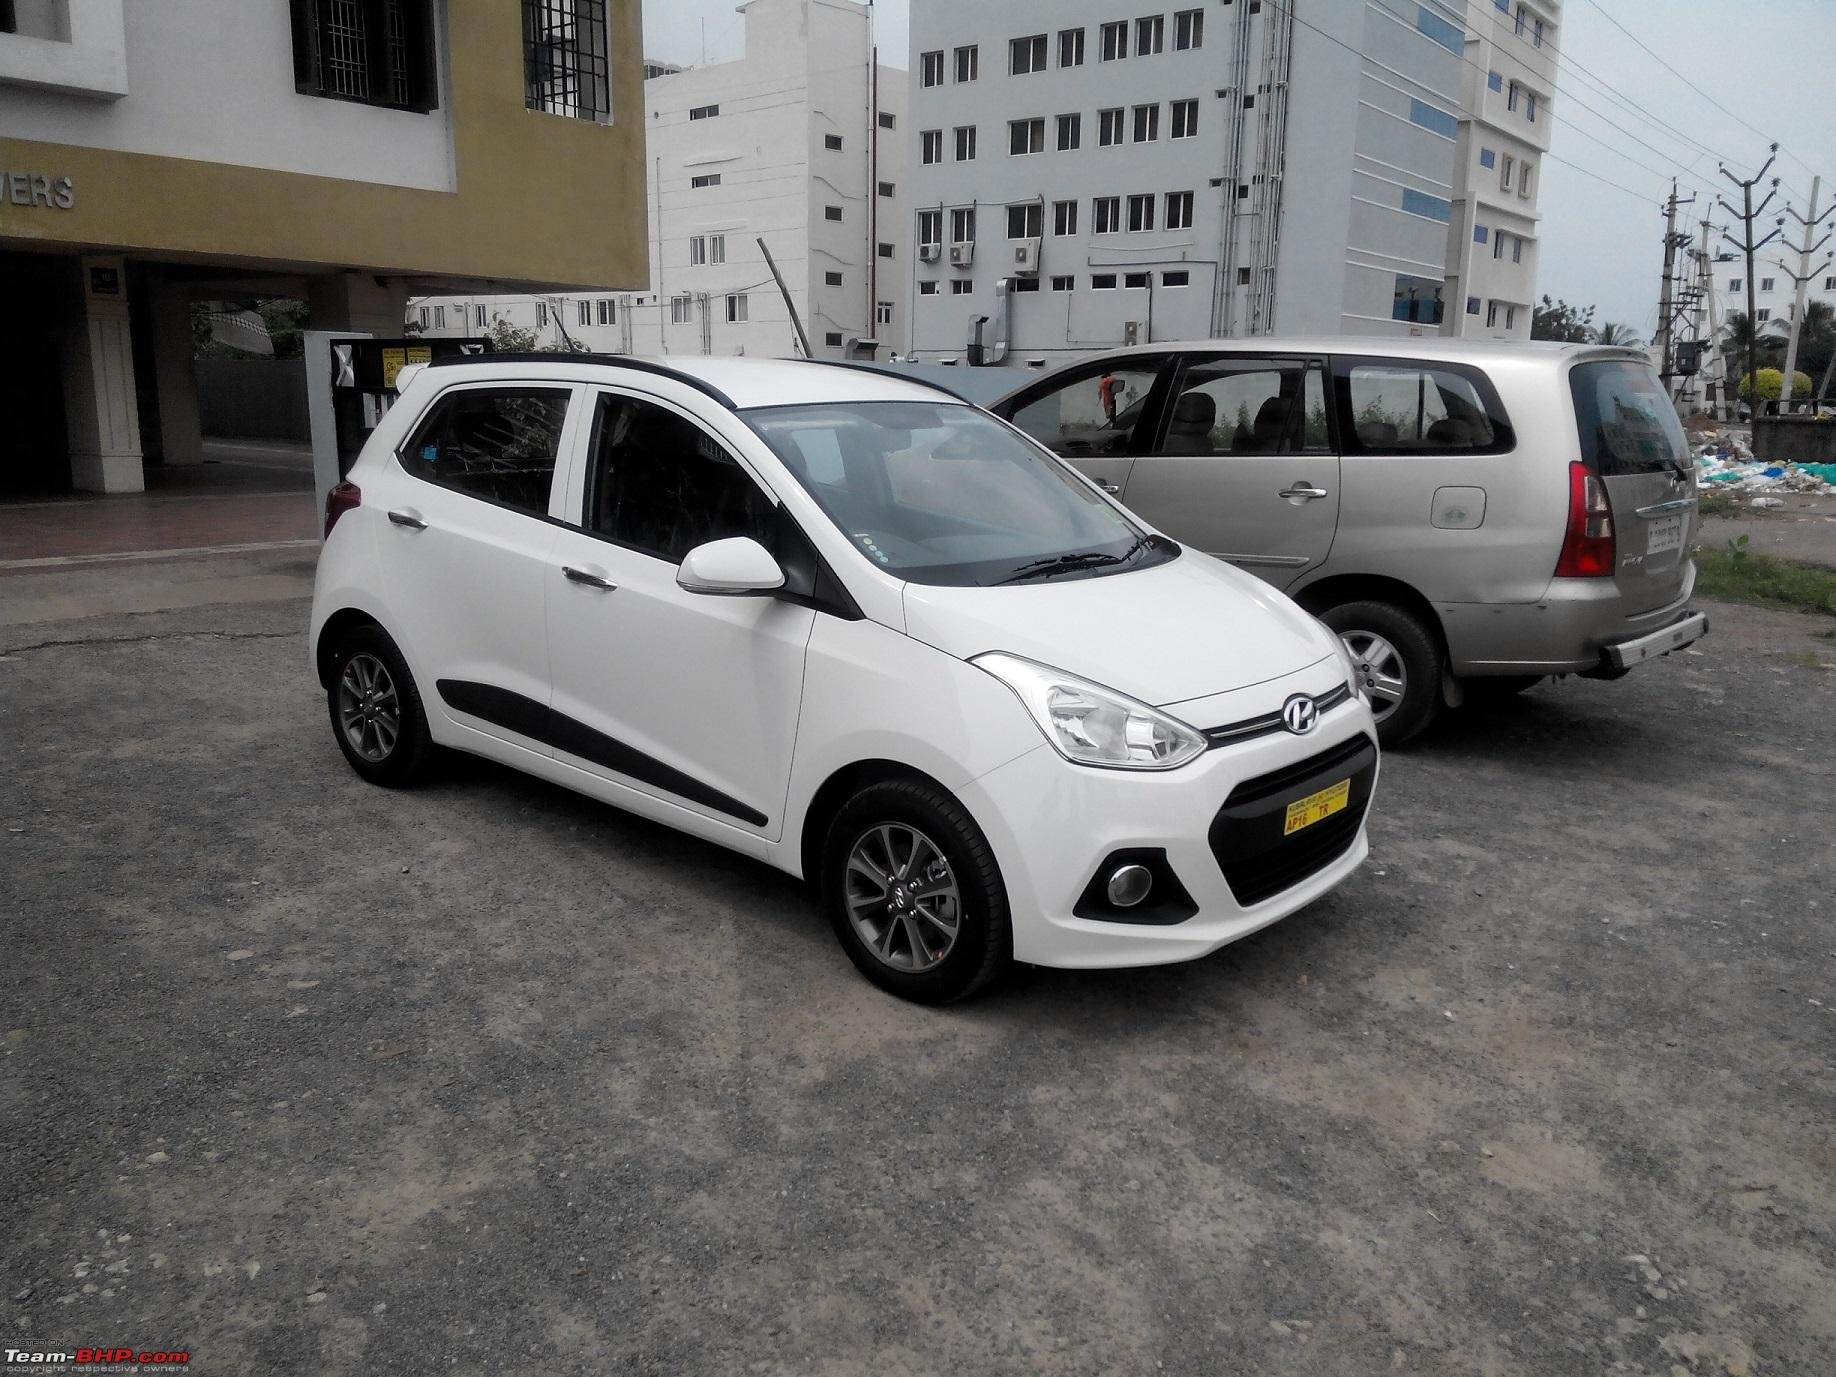 Hyundai i10 User Reviews | Hyundai i10 Owners Reviews | OnCars.in